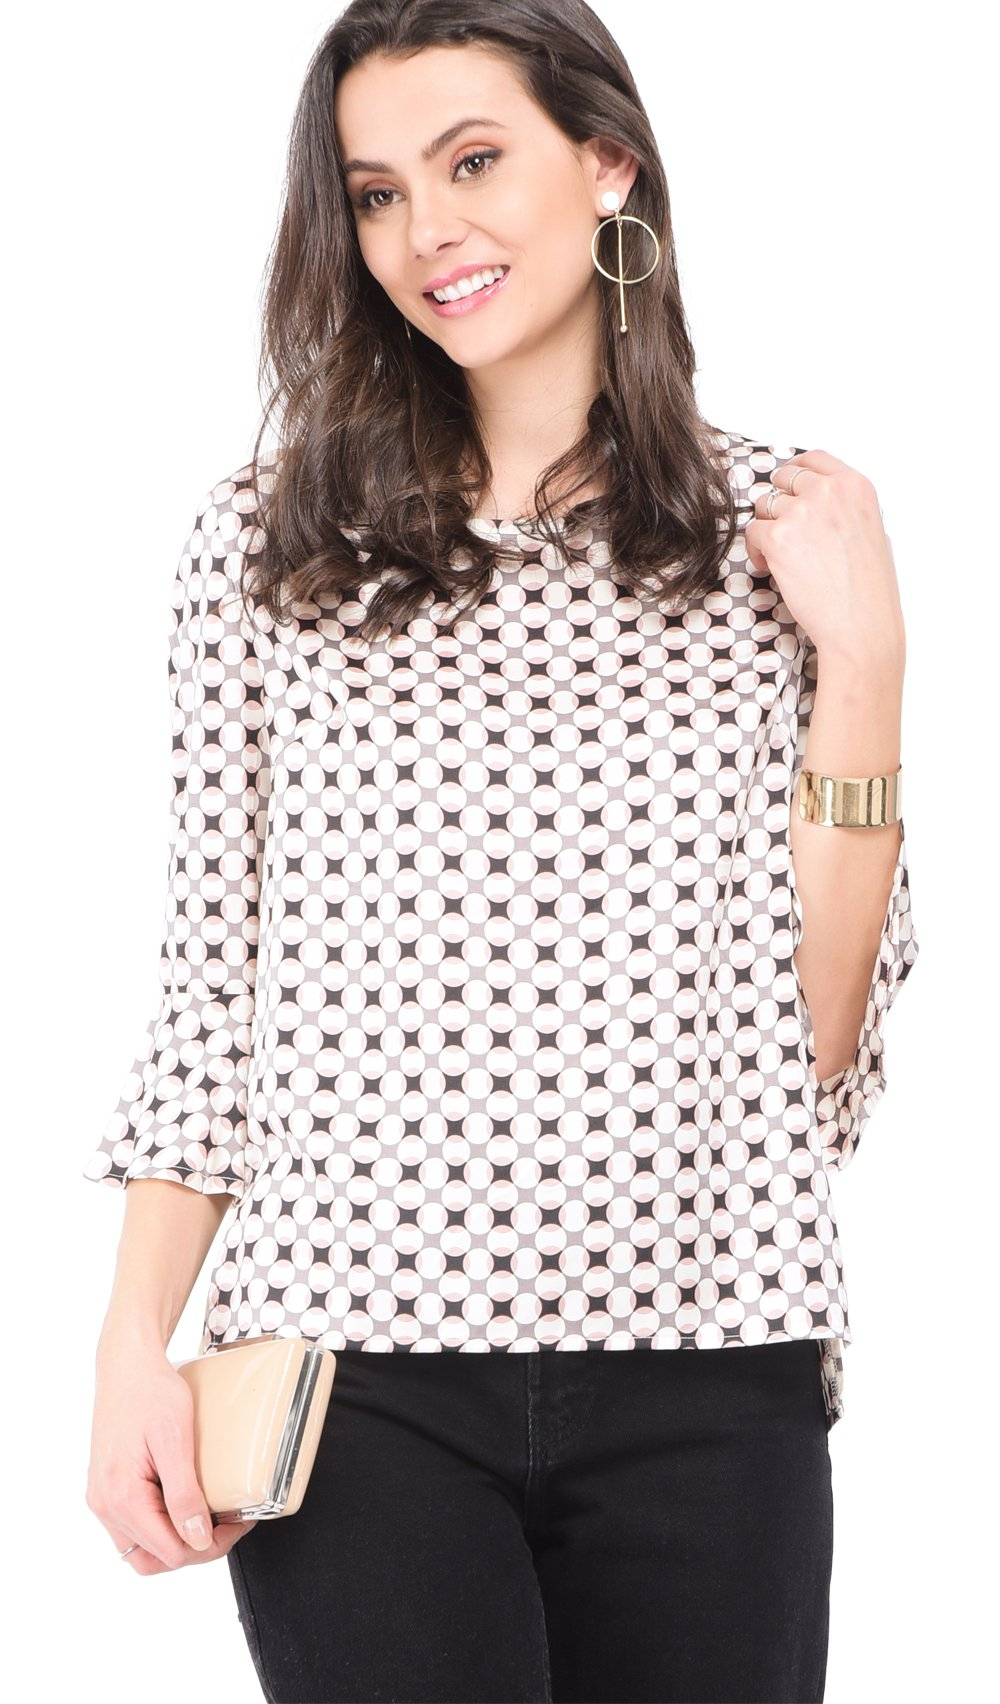 ROUND COLLAR TOP WITH PRINTED PATTERN AND RUFFLED SLEEVES